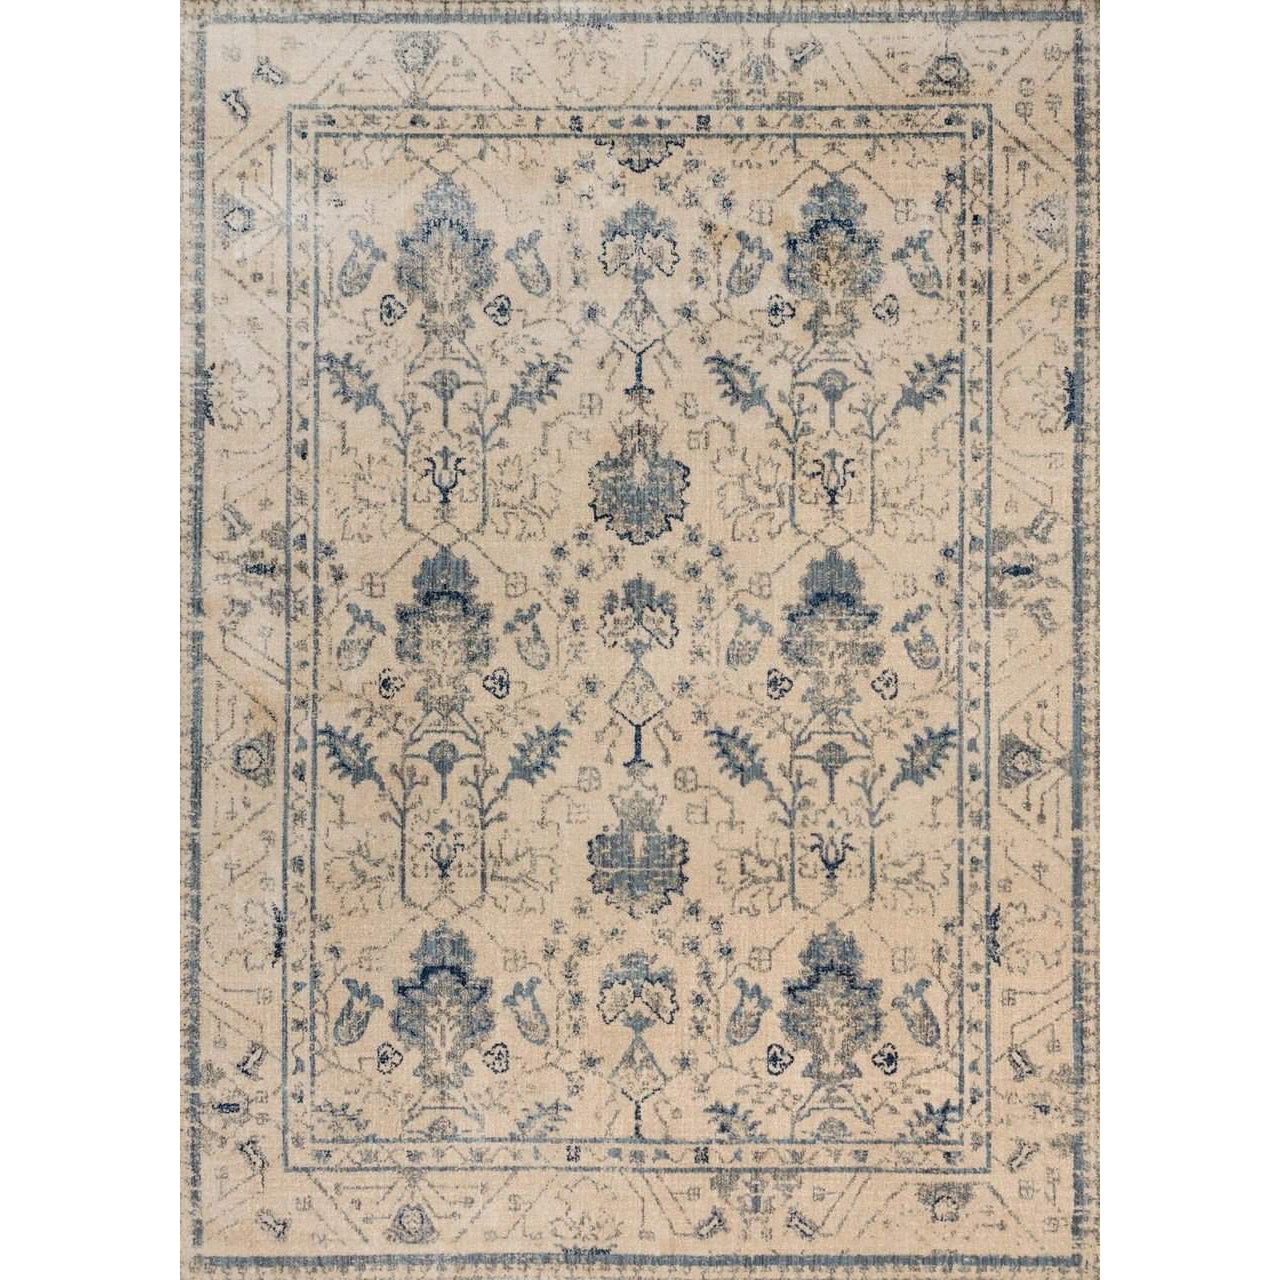 Joanna Gaines Rugs of Magnolia Home Rug Collection - Kivi Collection - Ivory / Slate - Blue Hand Home